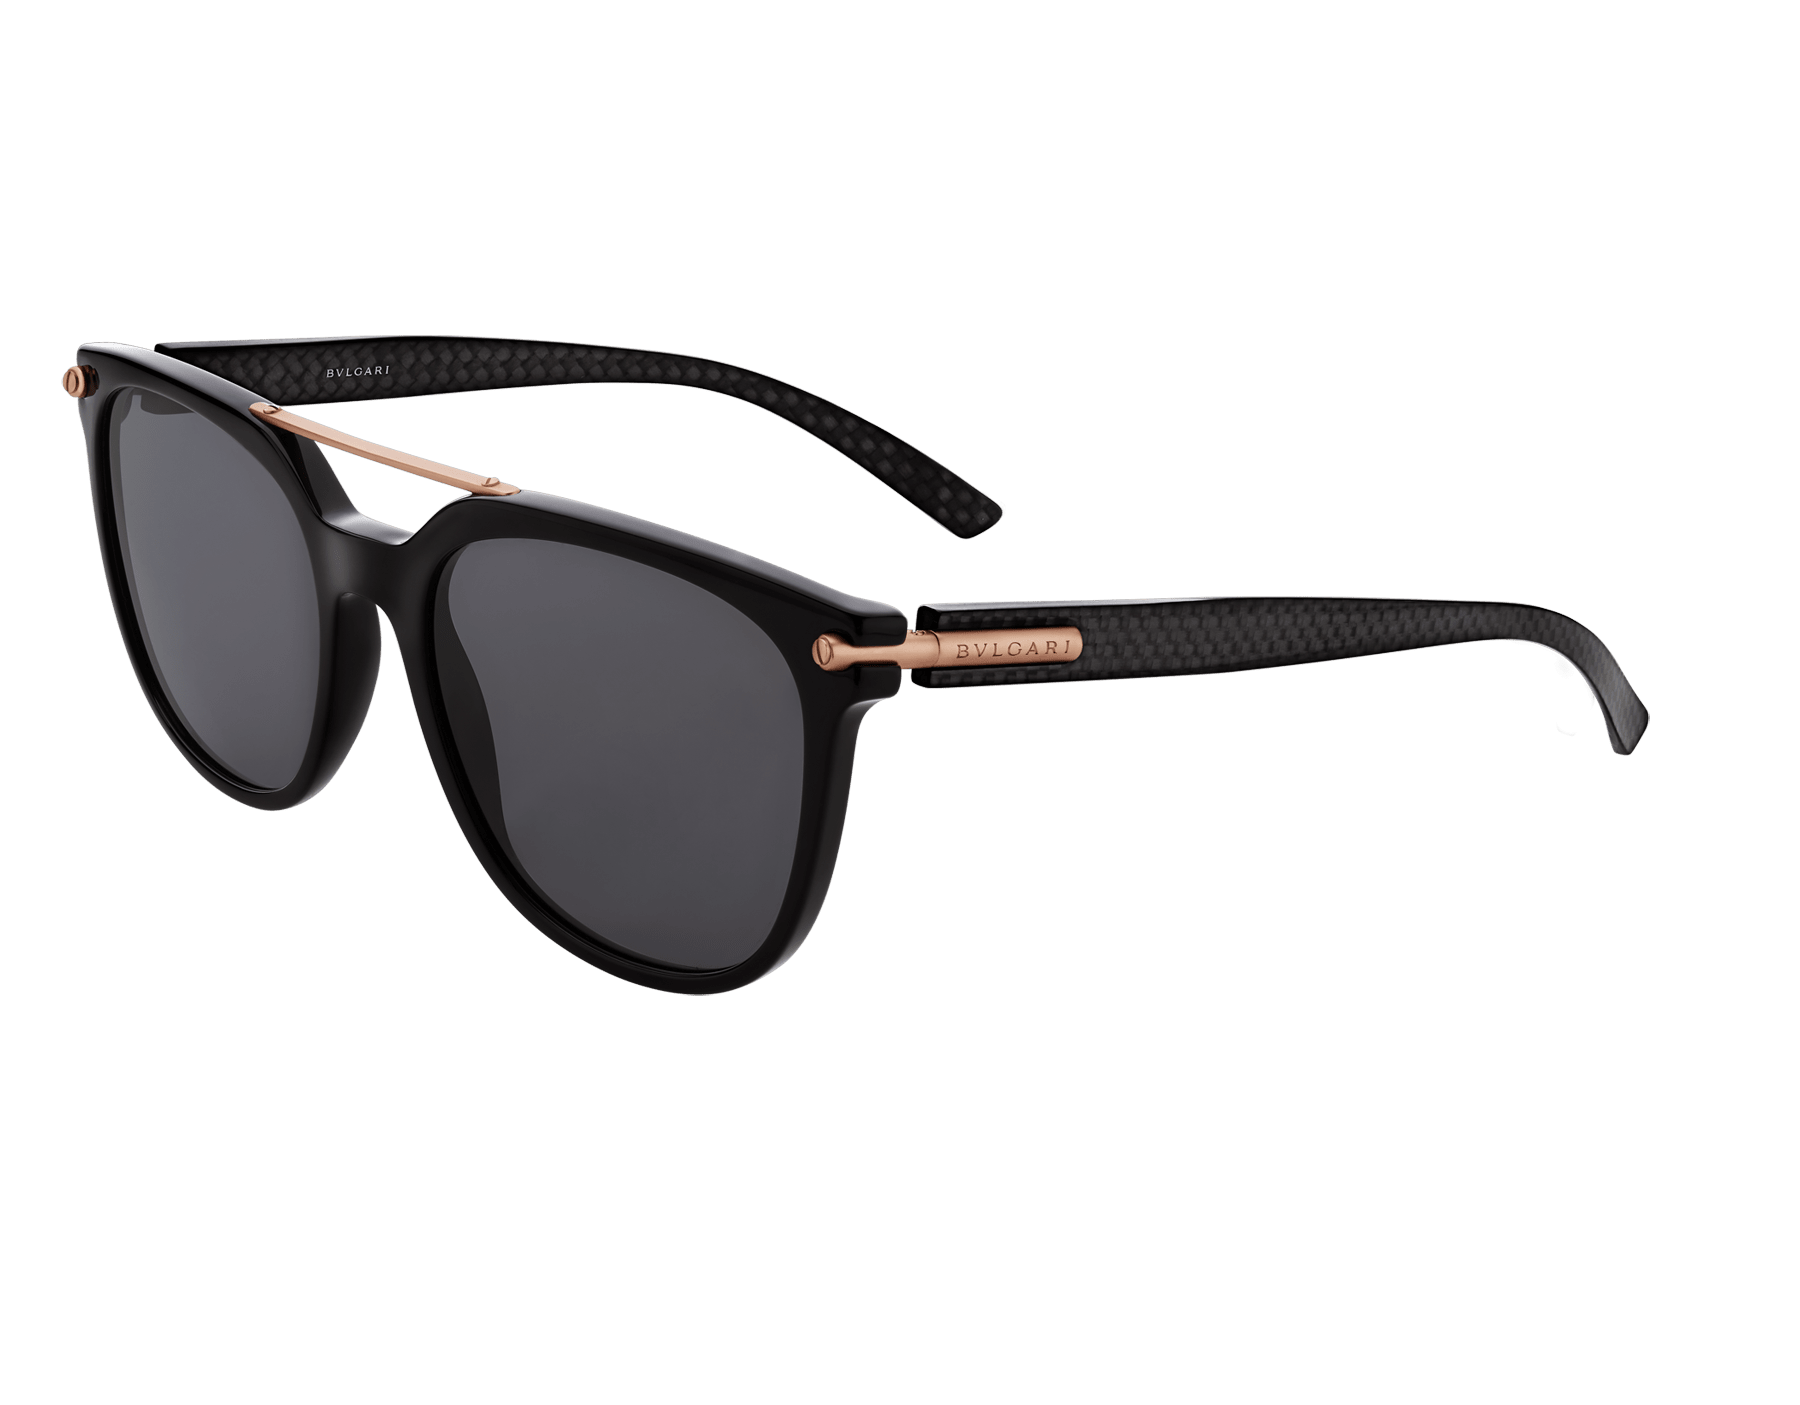 BVLGARI BVLGARI squared acetate sunglasses with metal double bridge and carbon fibre arms. 903907 image 1